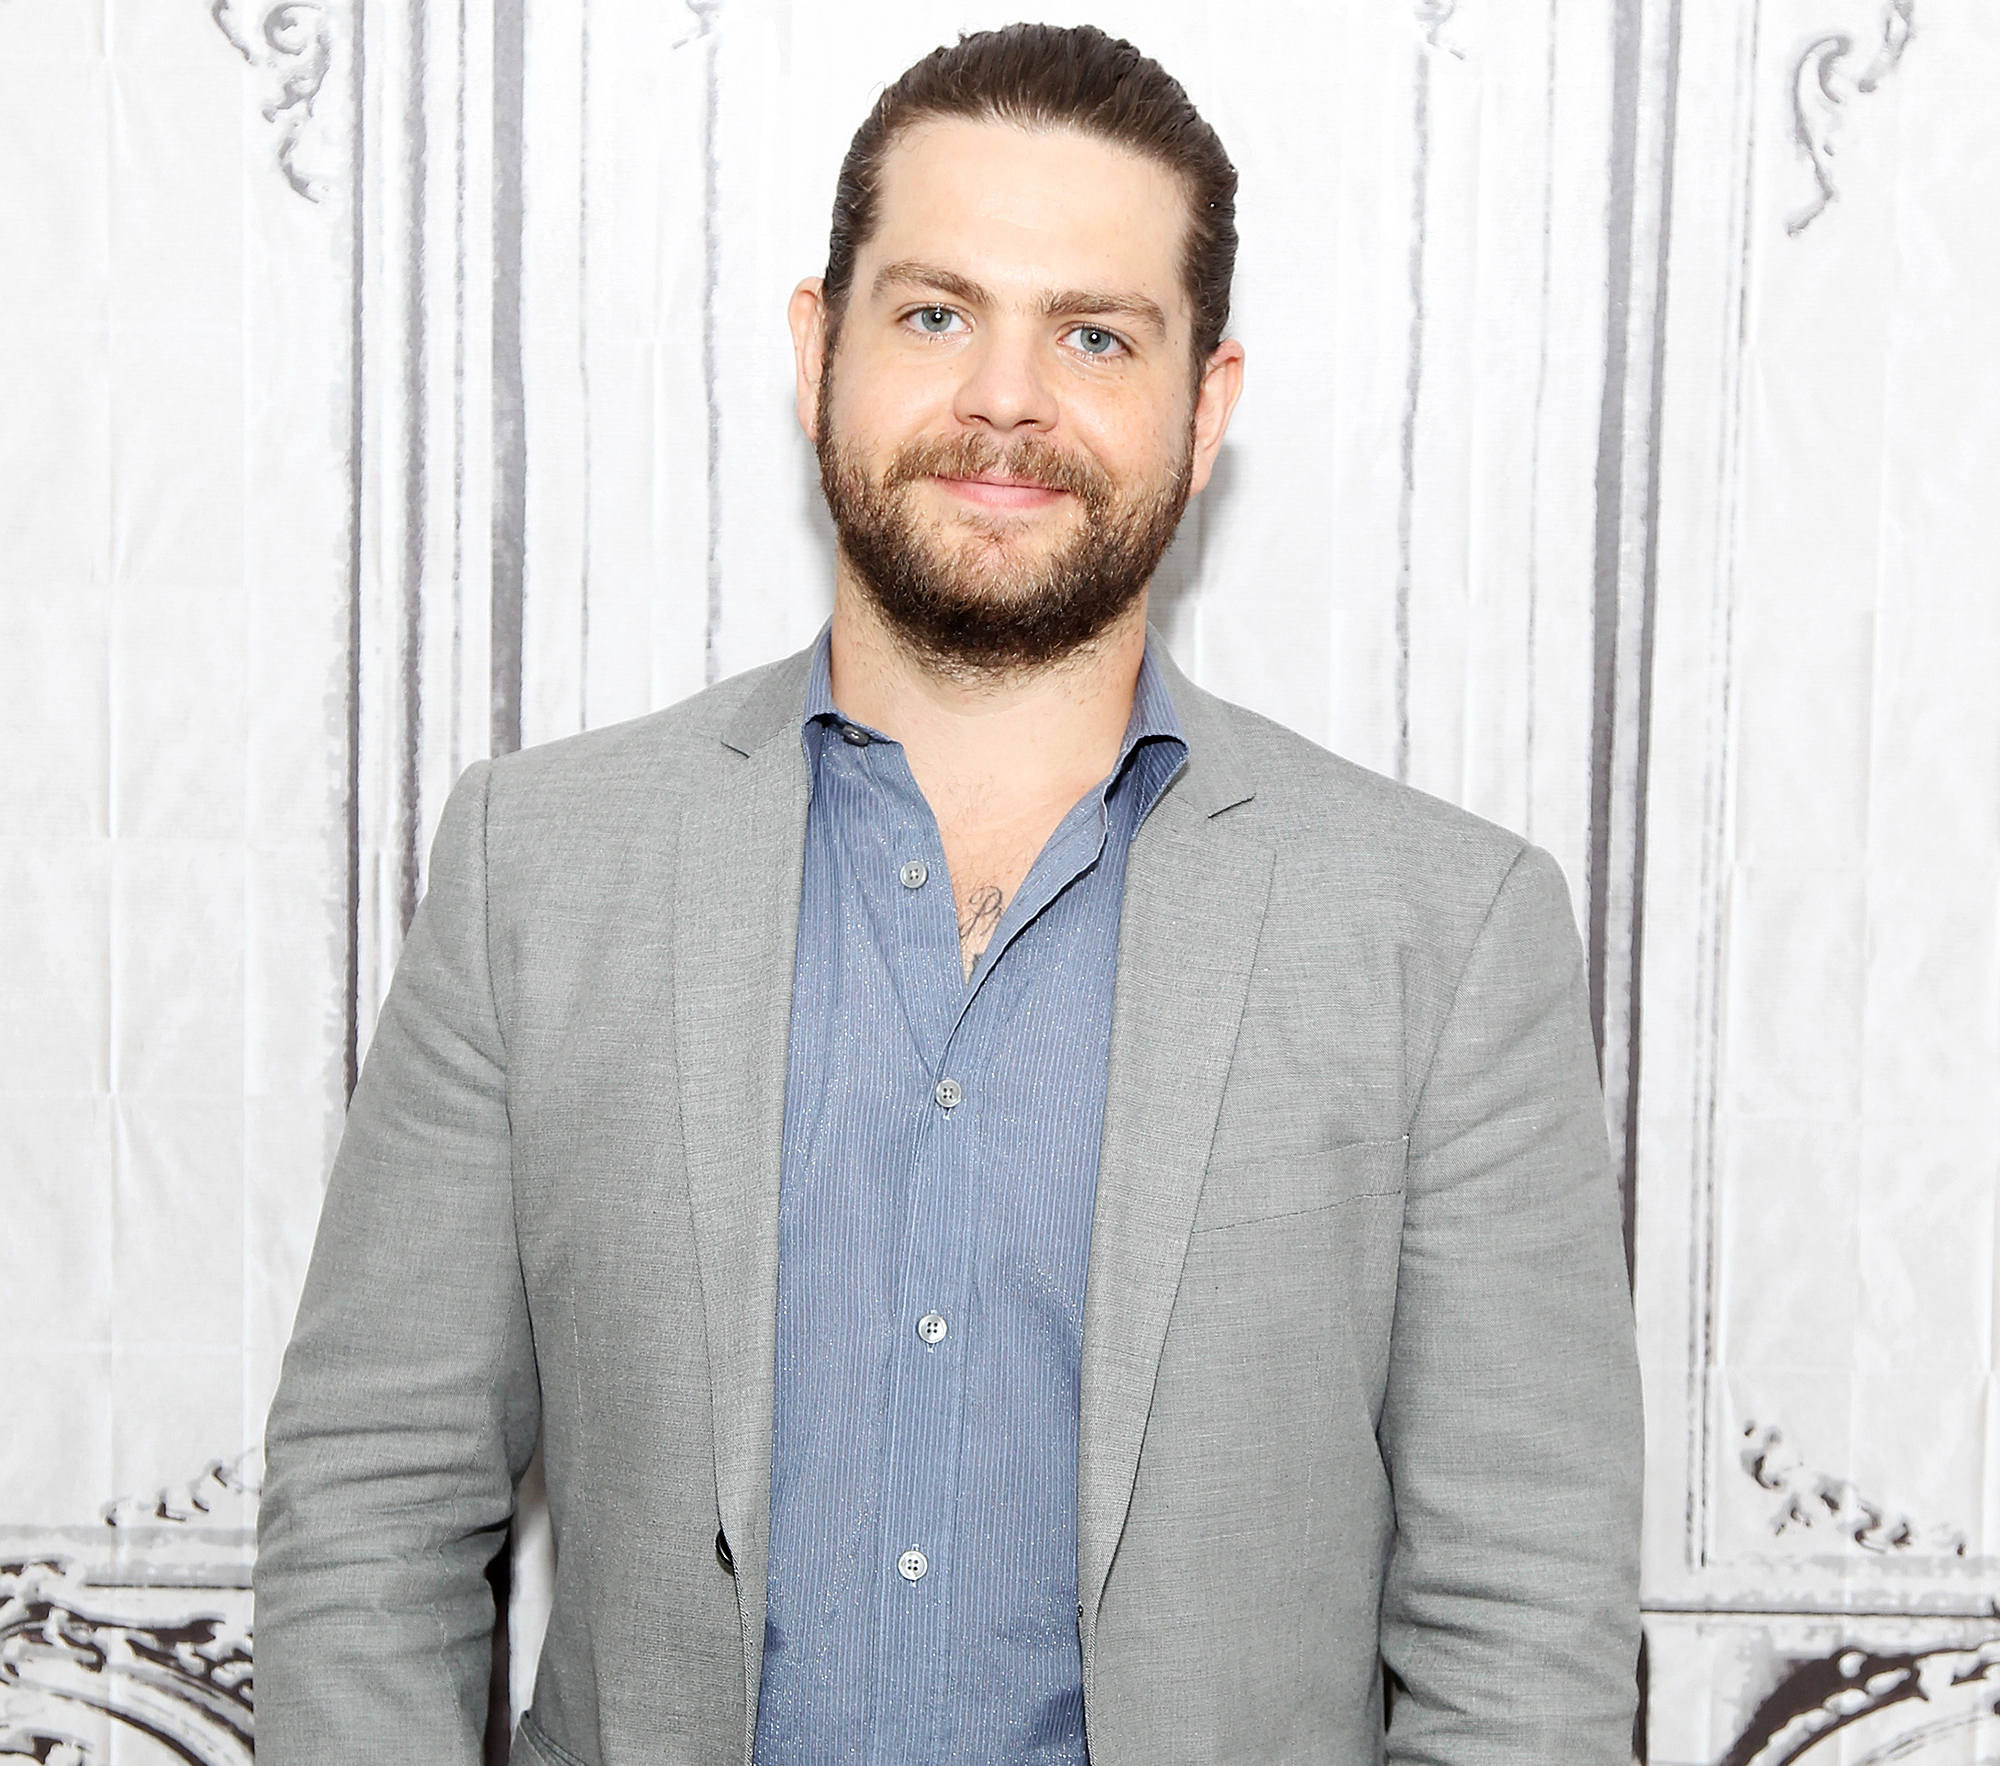 Jack Osbourne 25 Things You Don't Know About Me